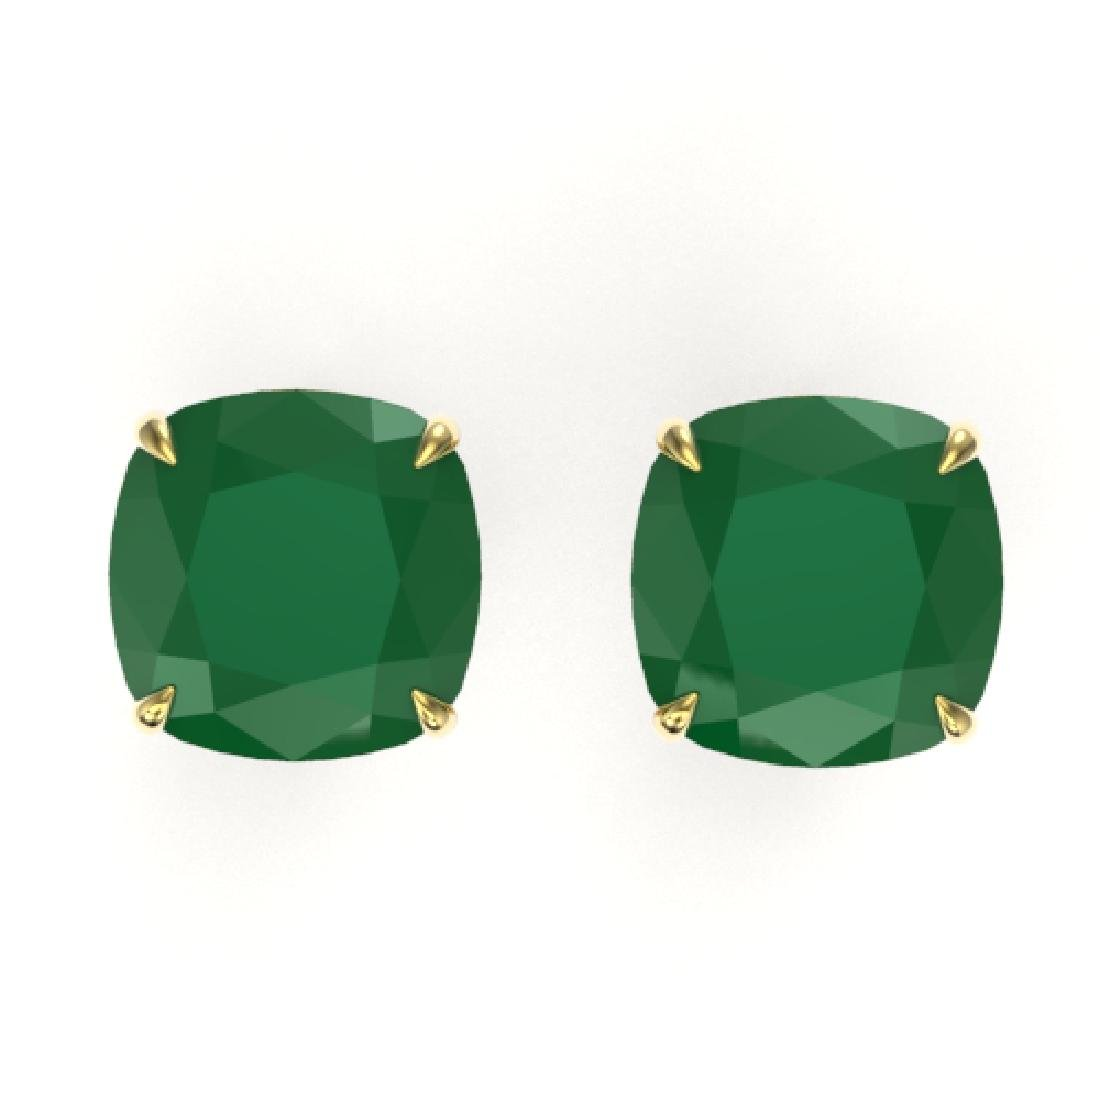 12 CTW Cushion Cut Emerald Designer Solitaire Stud